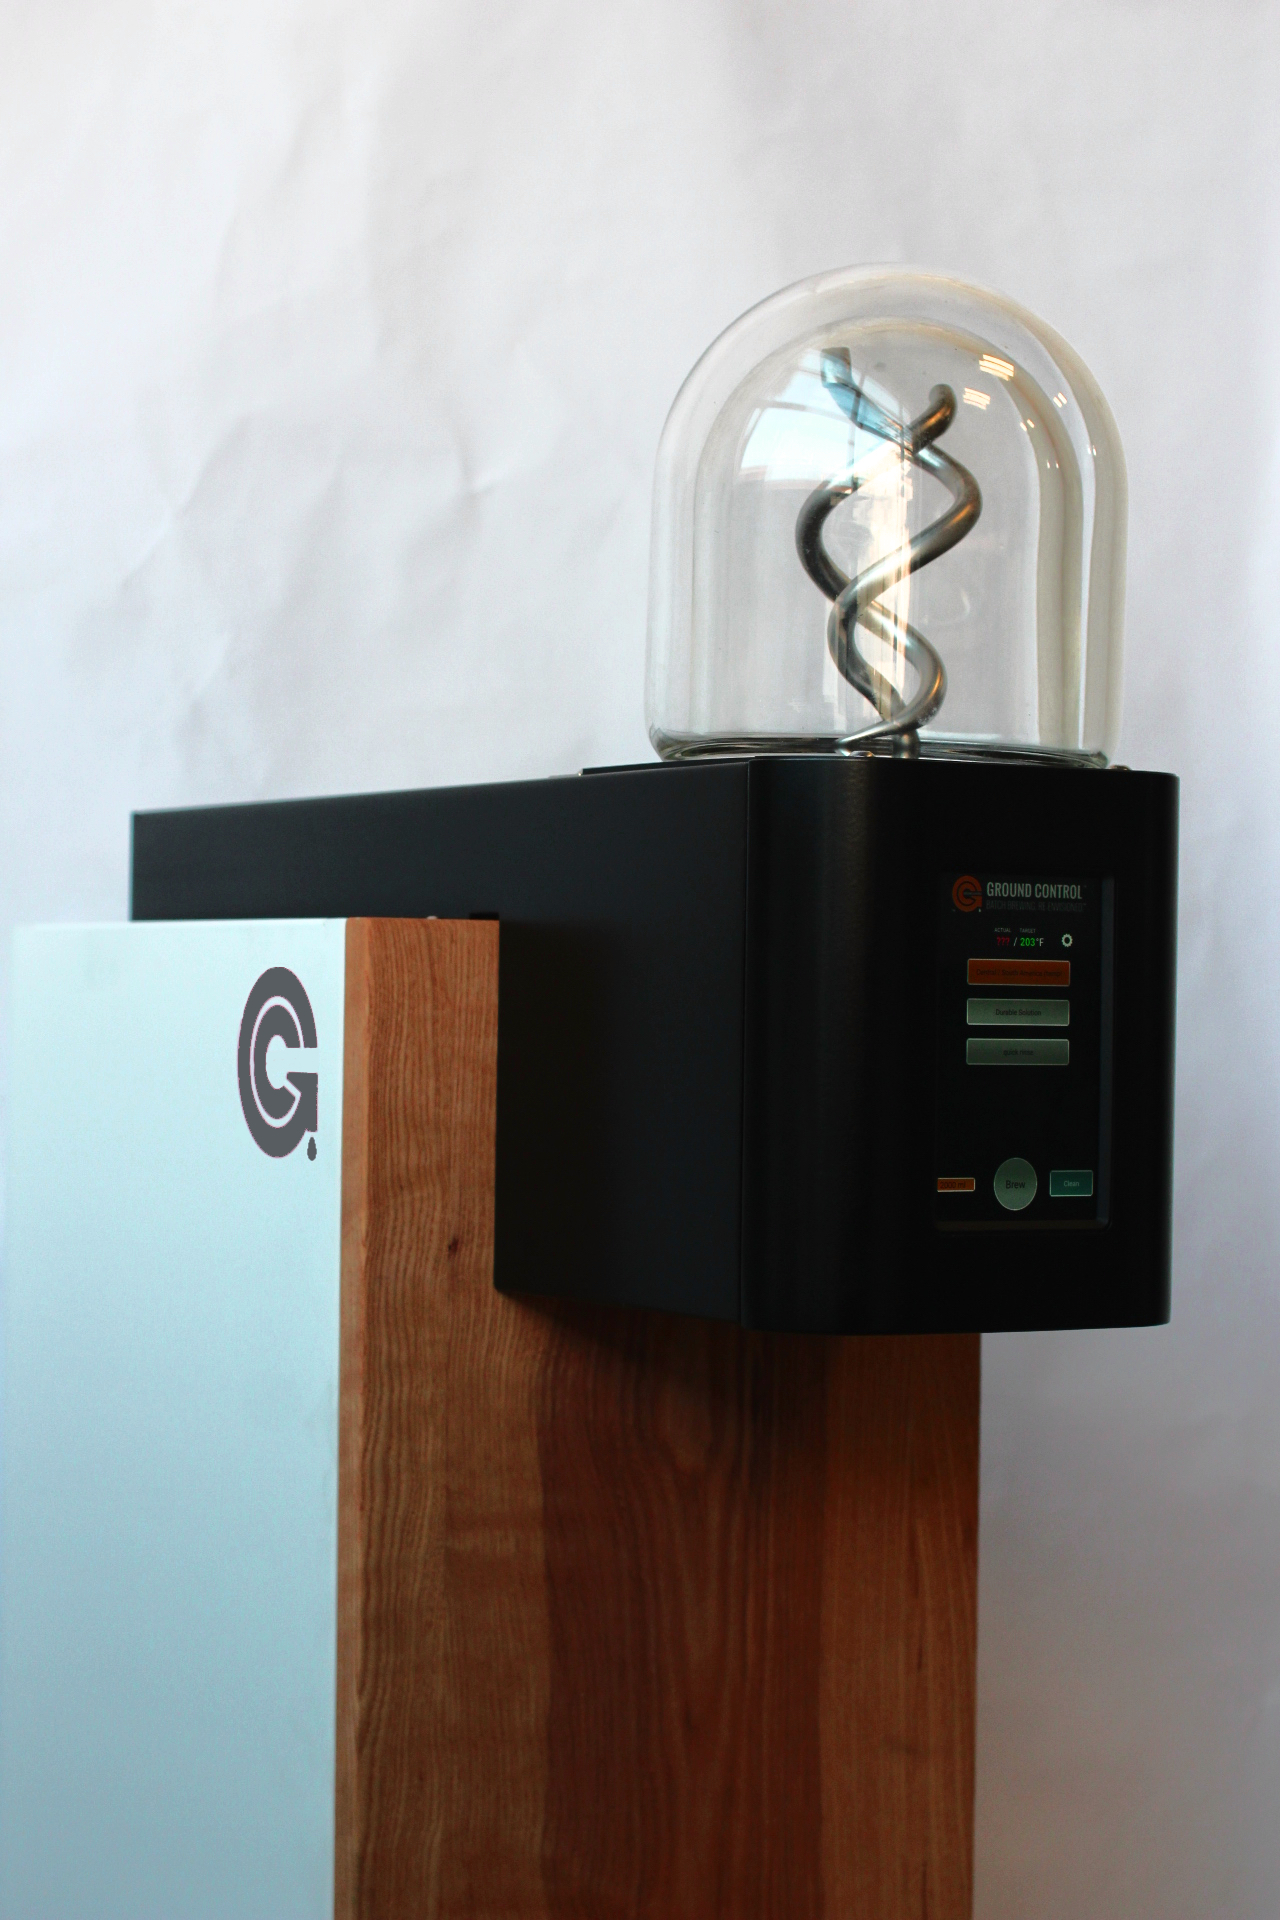 The base model of the Ground Control Cyclops batch coffee brewer